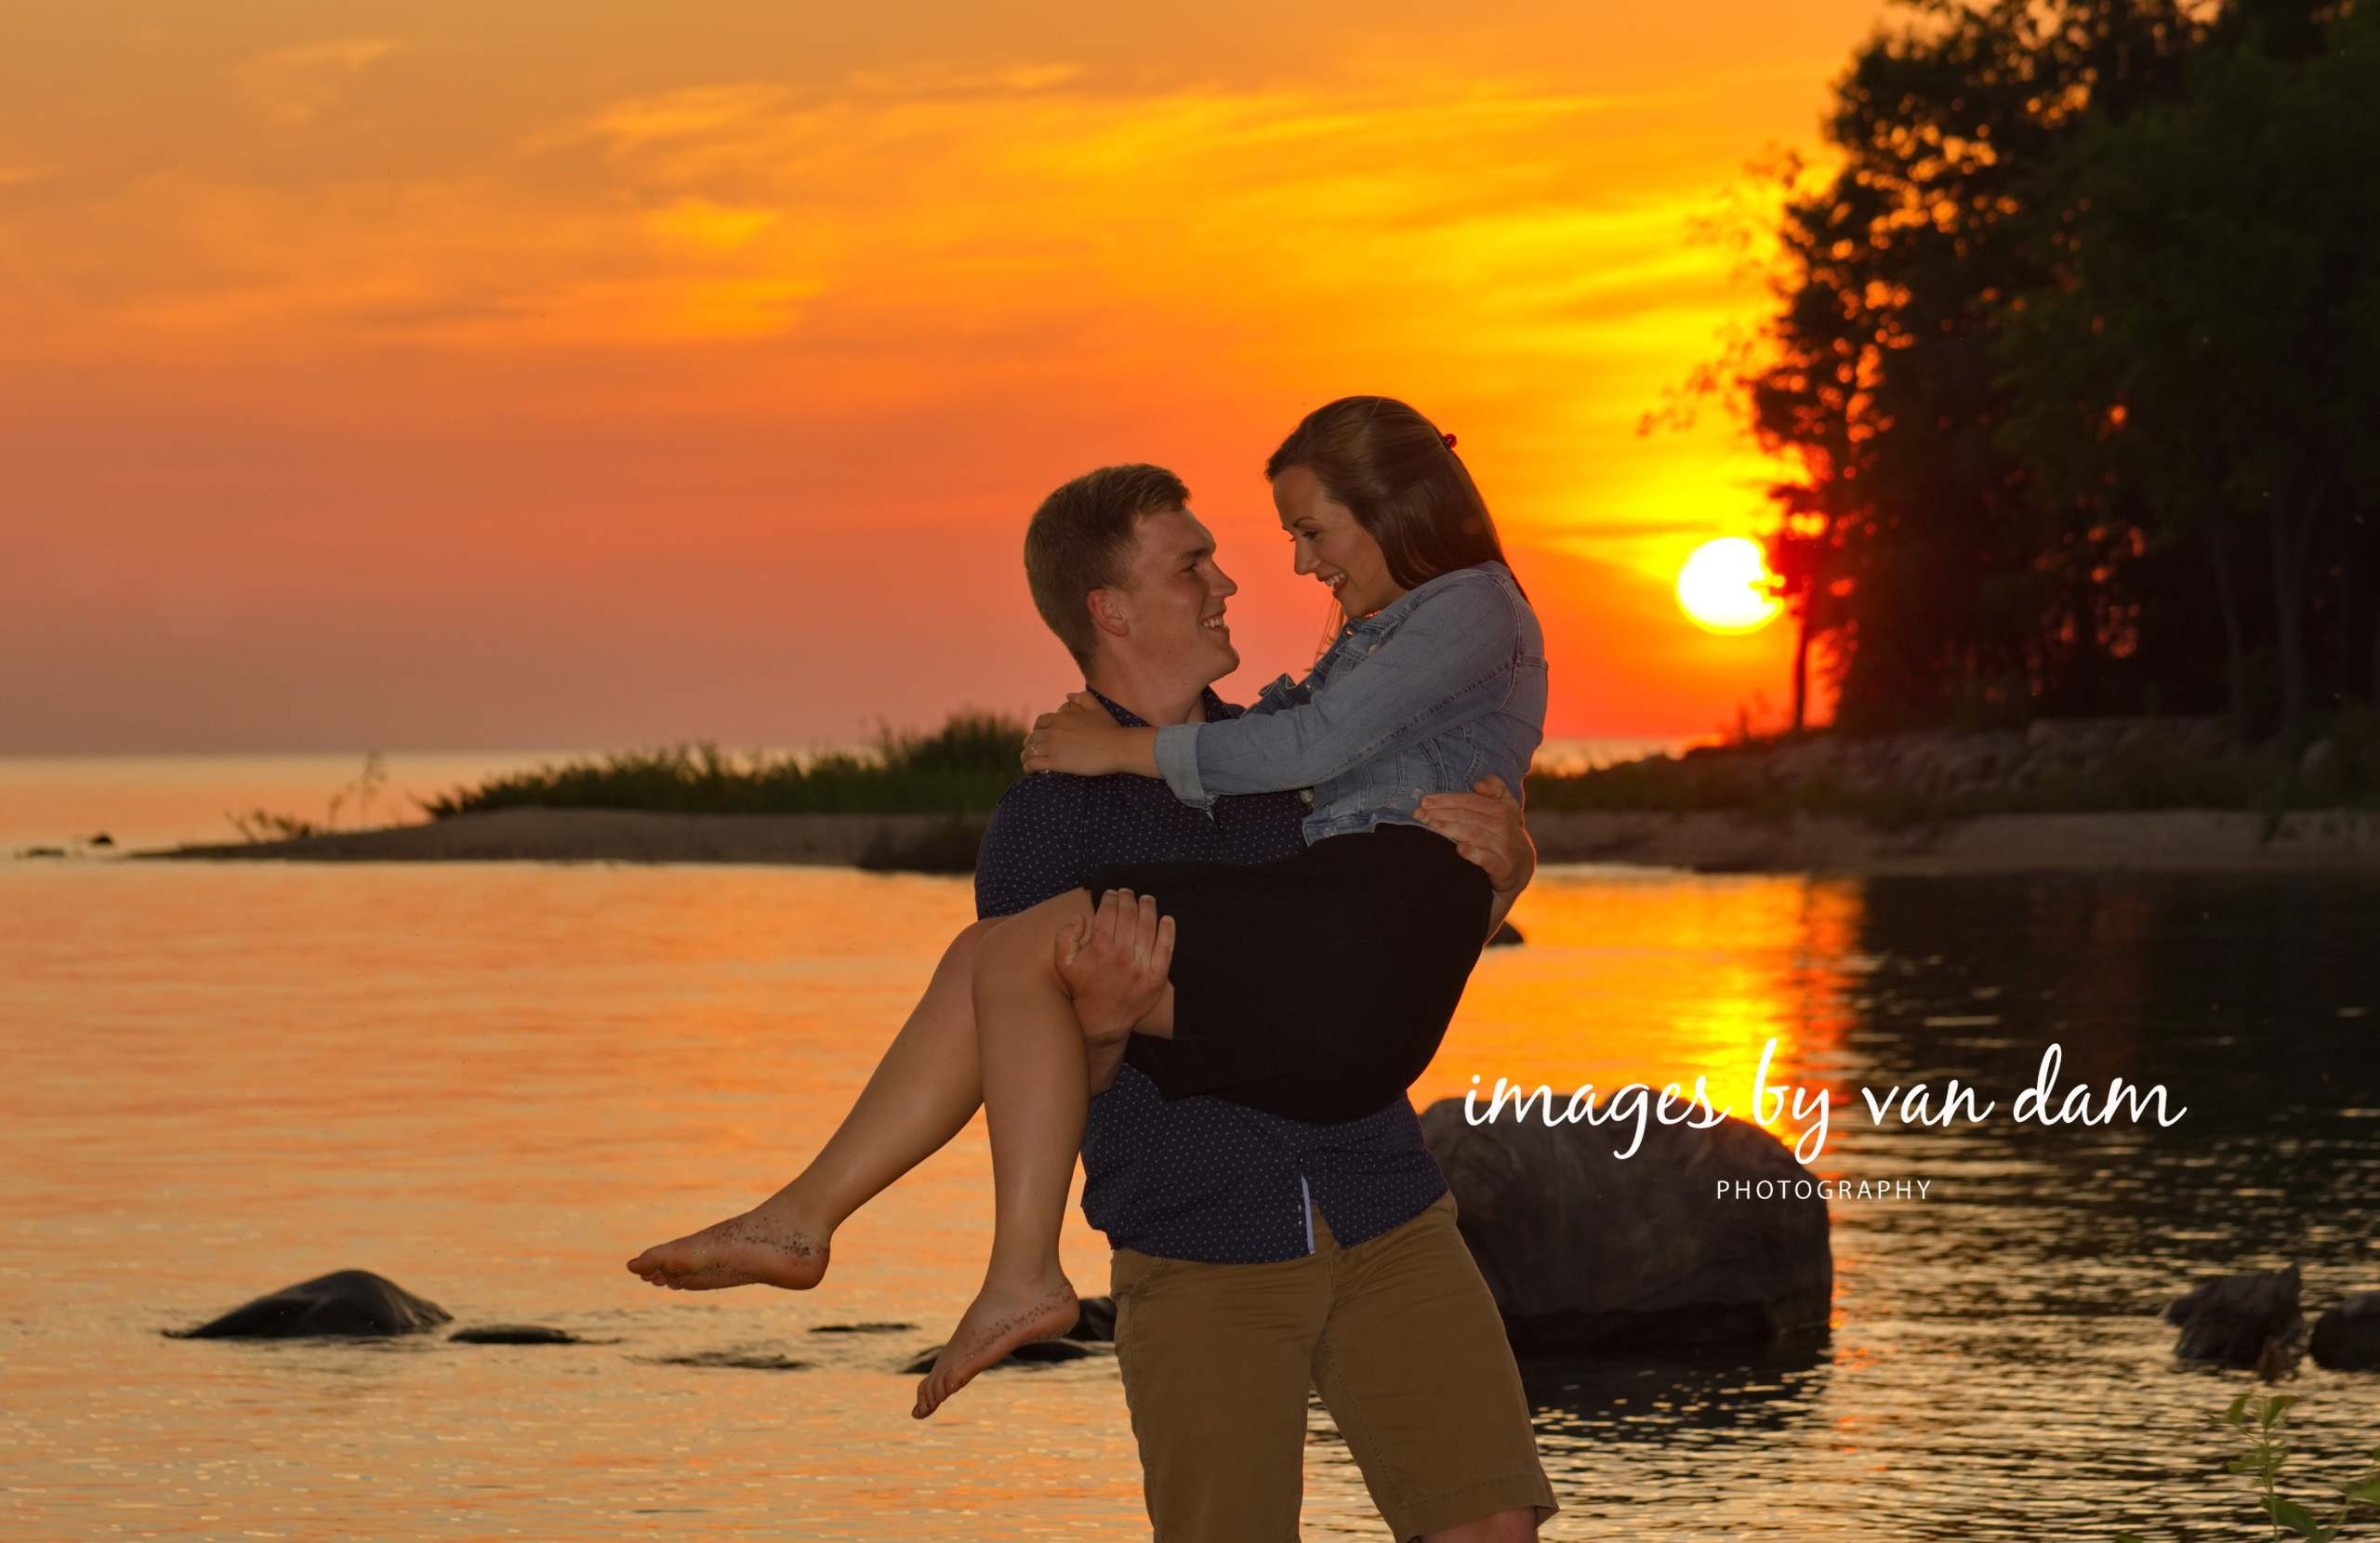 Young man lifts woman in his arm with dramatic sunset behind